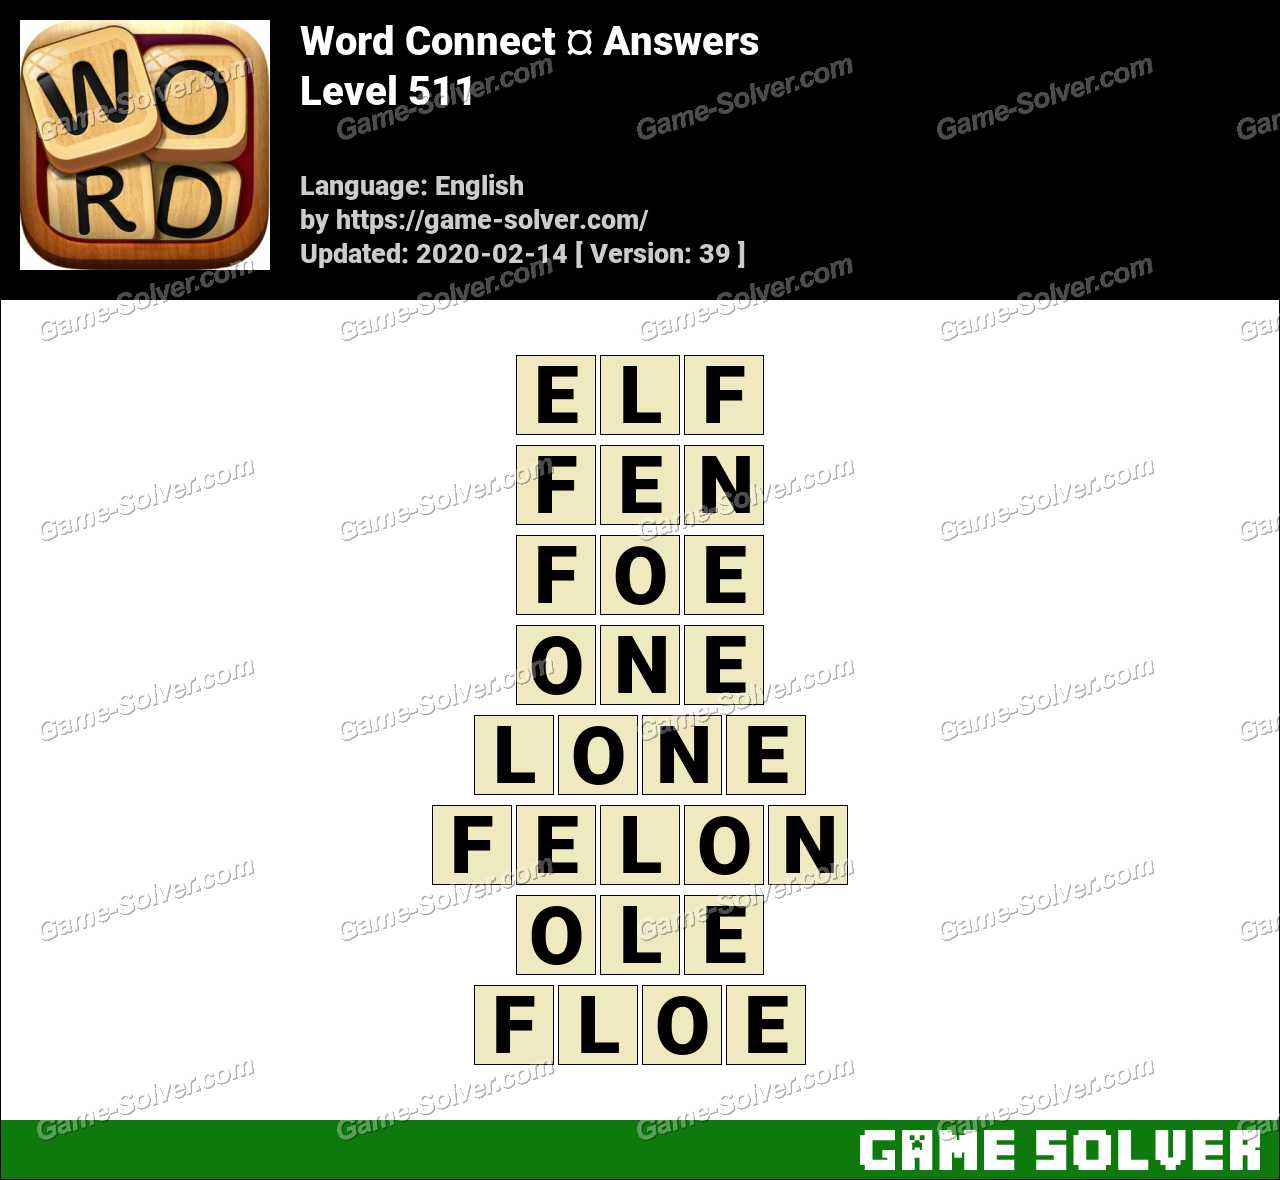 Word Connect Level 511 Answers